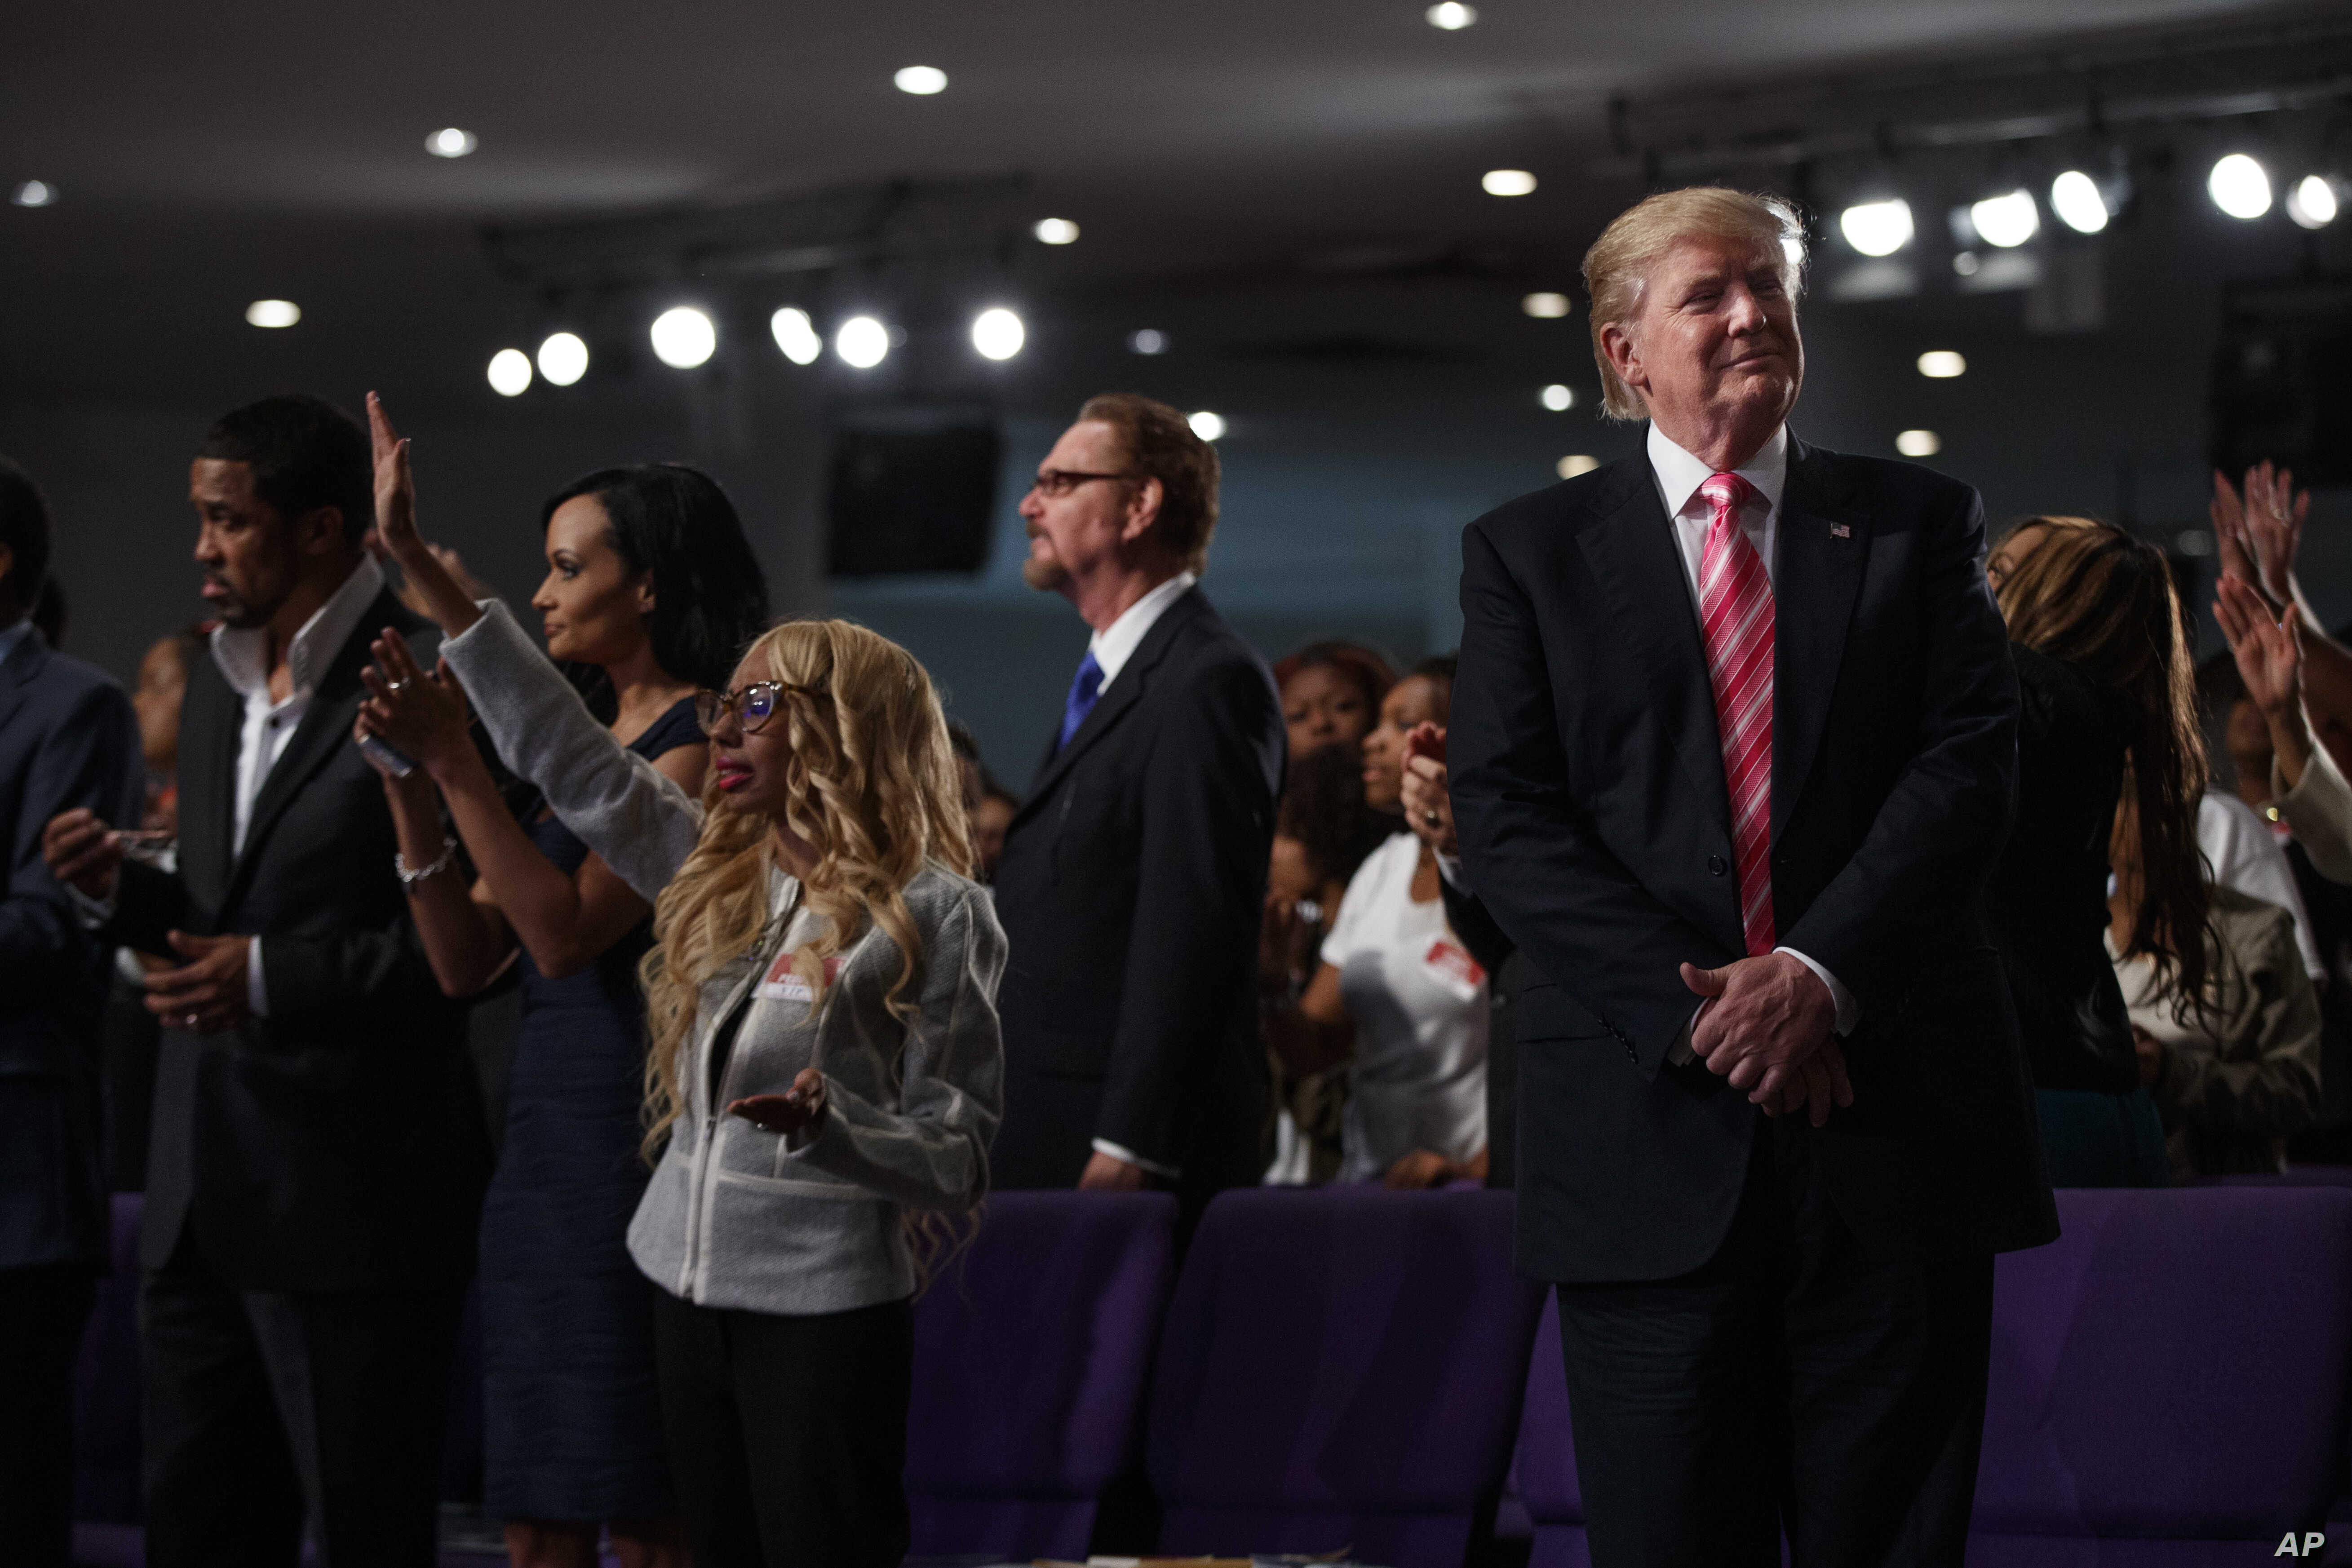 Republican presidential candidate Donald Trump, right, looks on during a church service at Great Faith Ministries in Detroit, Sept. 3, 2016.